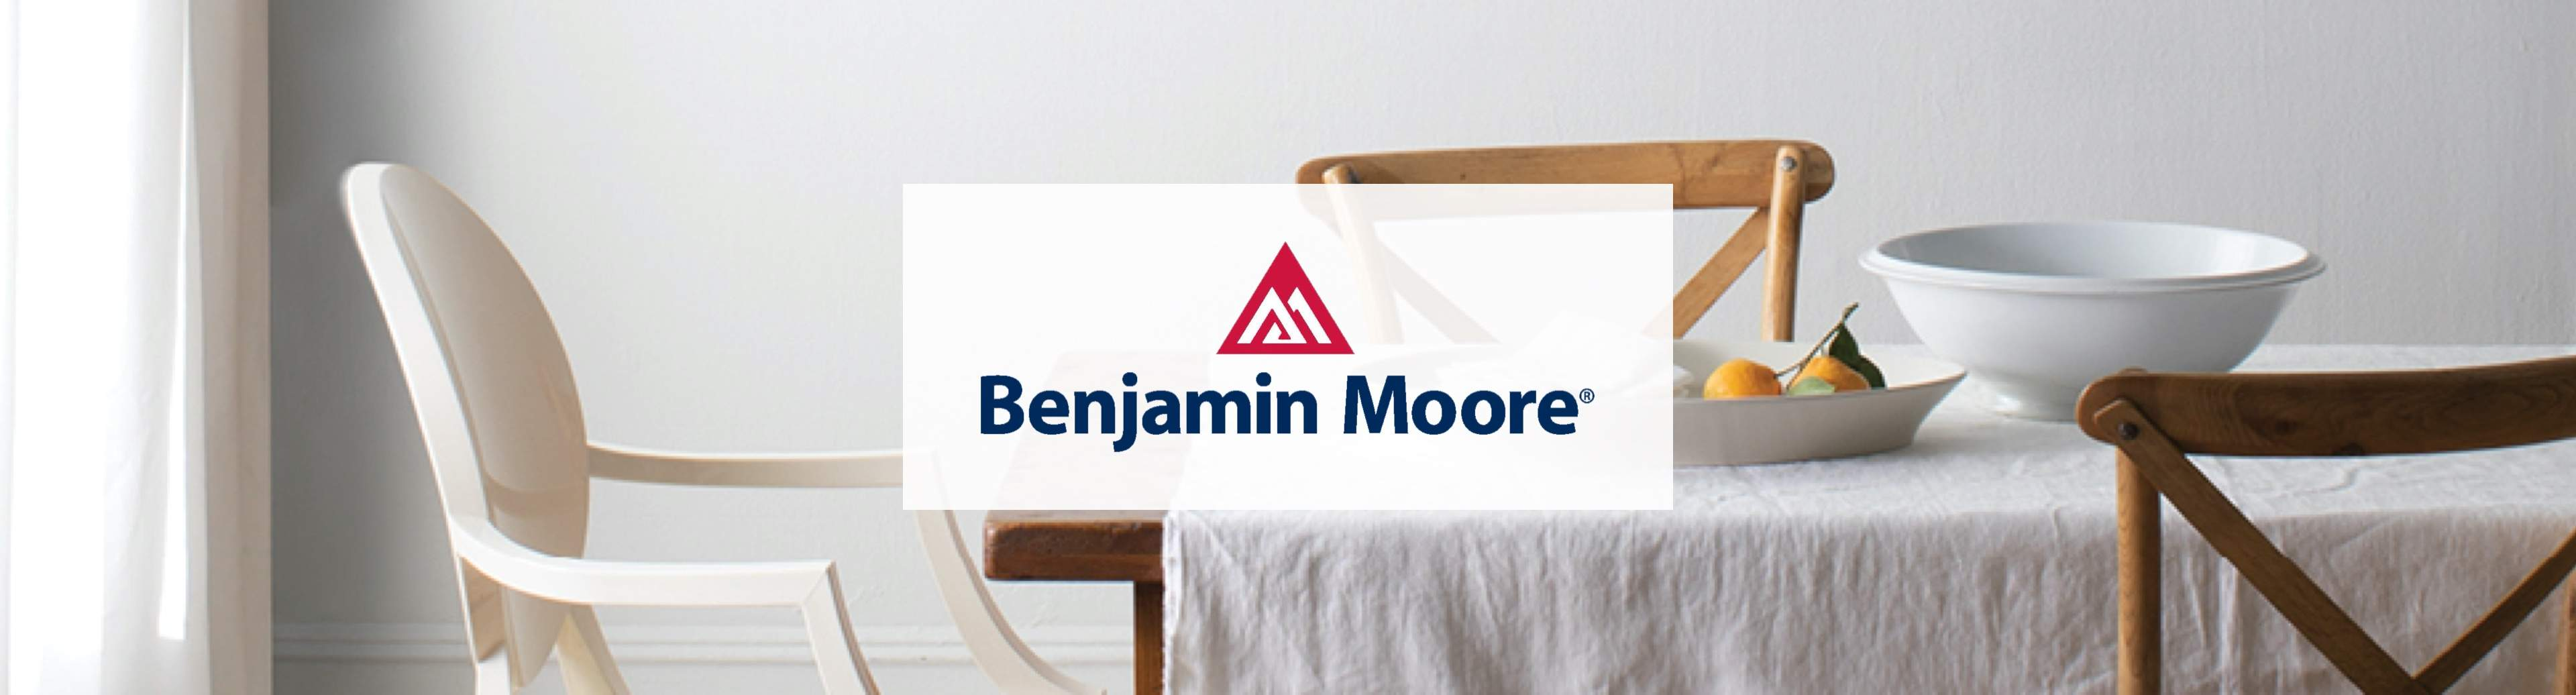 Shop Benjamin Moore at Park Supply - Benjamin Moore logo with painted dining room